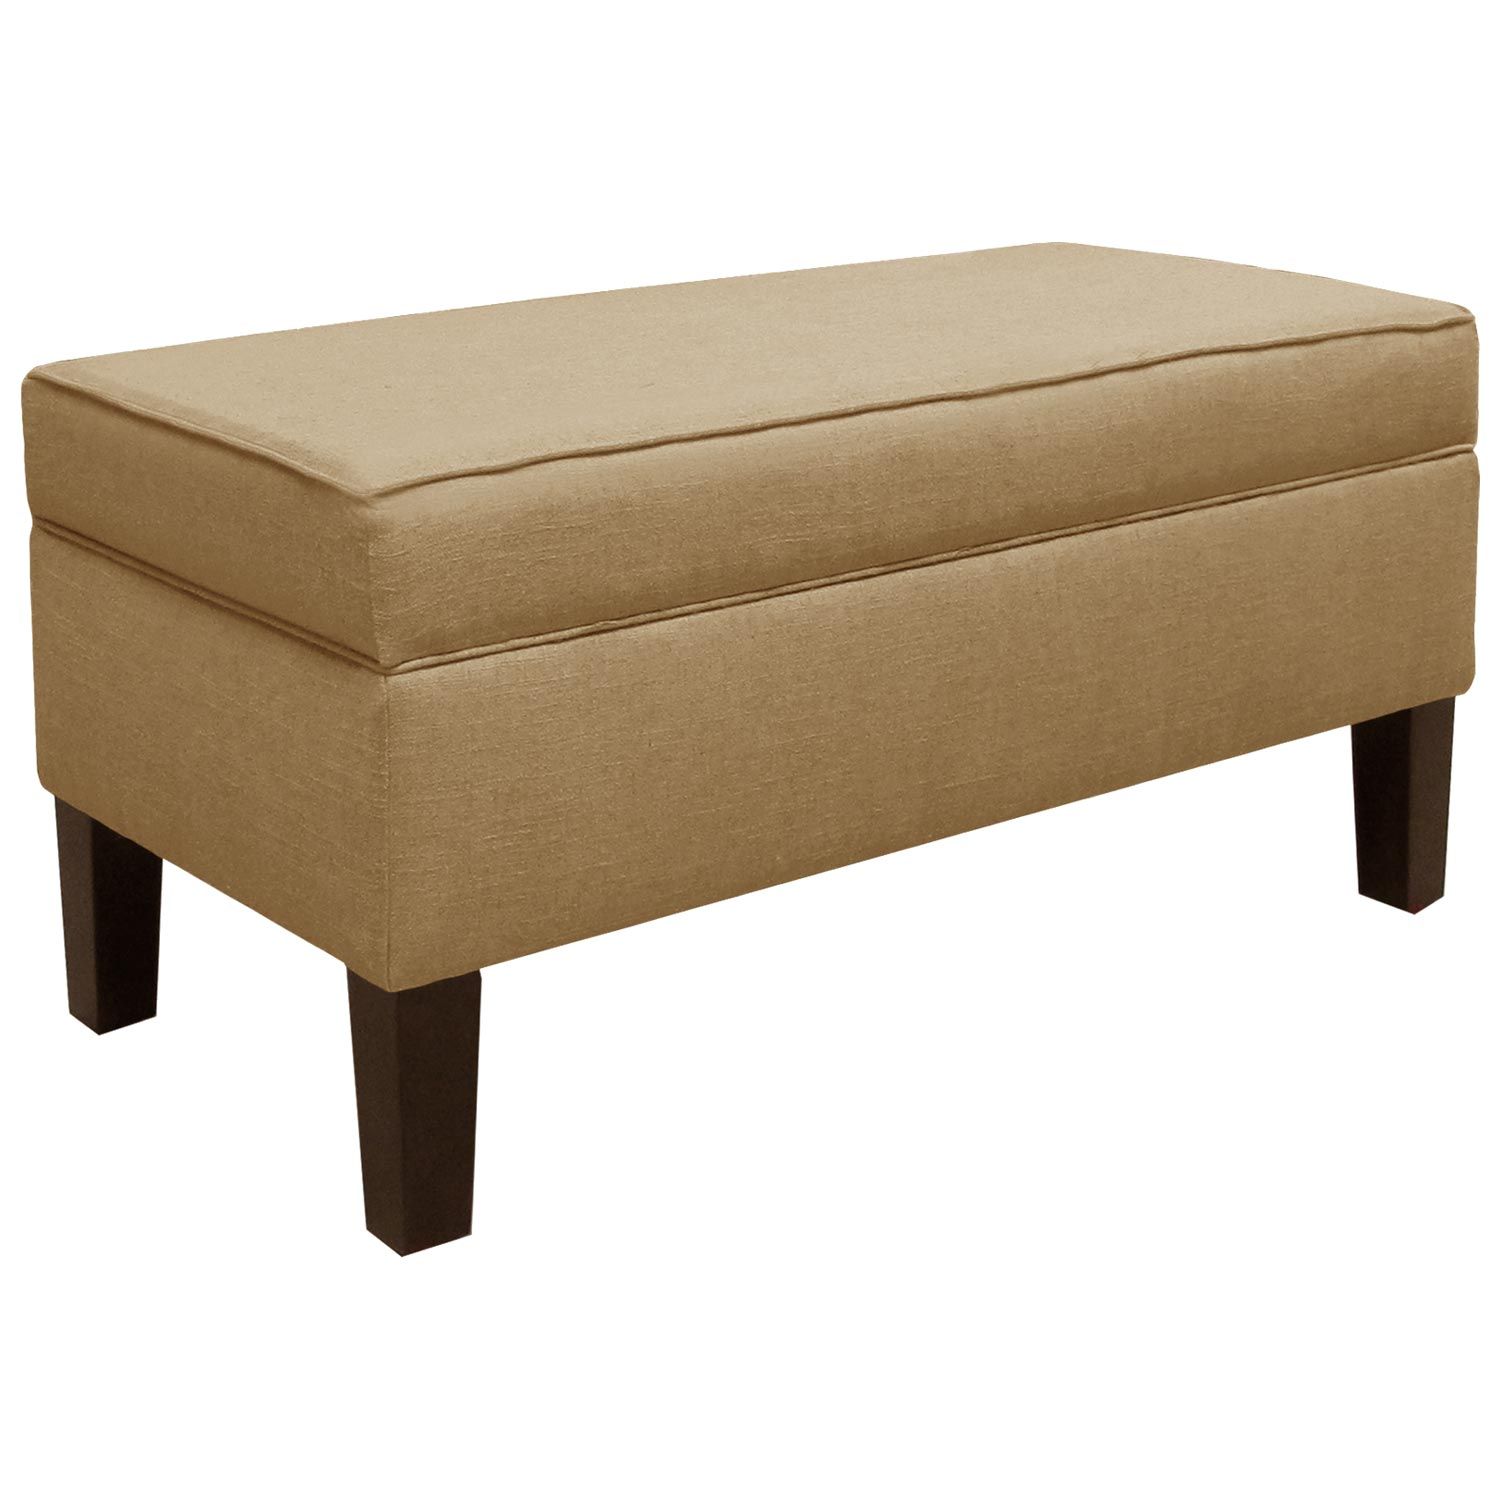 Perseus upholstered storage bench decorative piping sandstone dcg stores Decorative benches